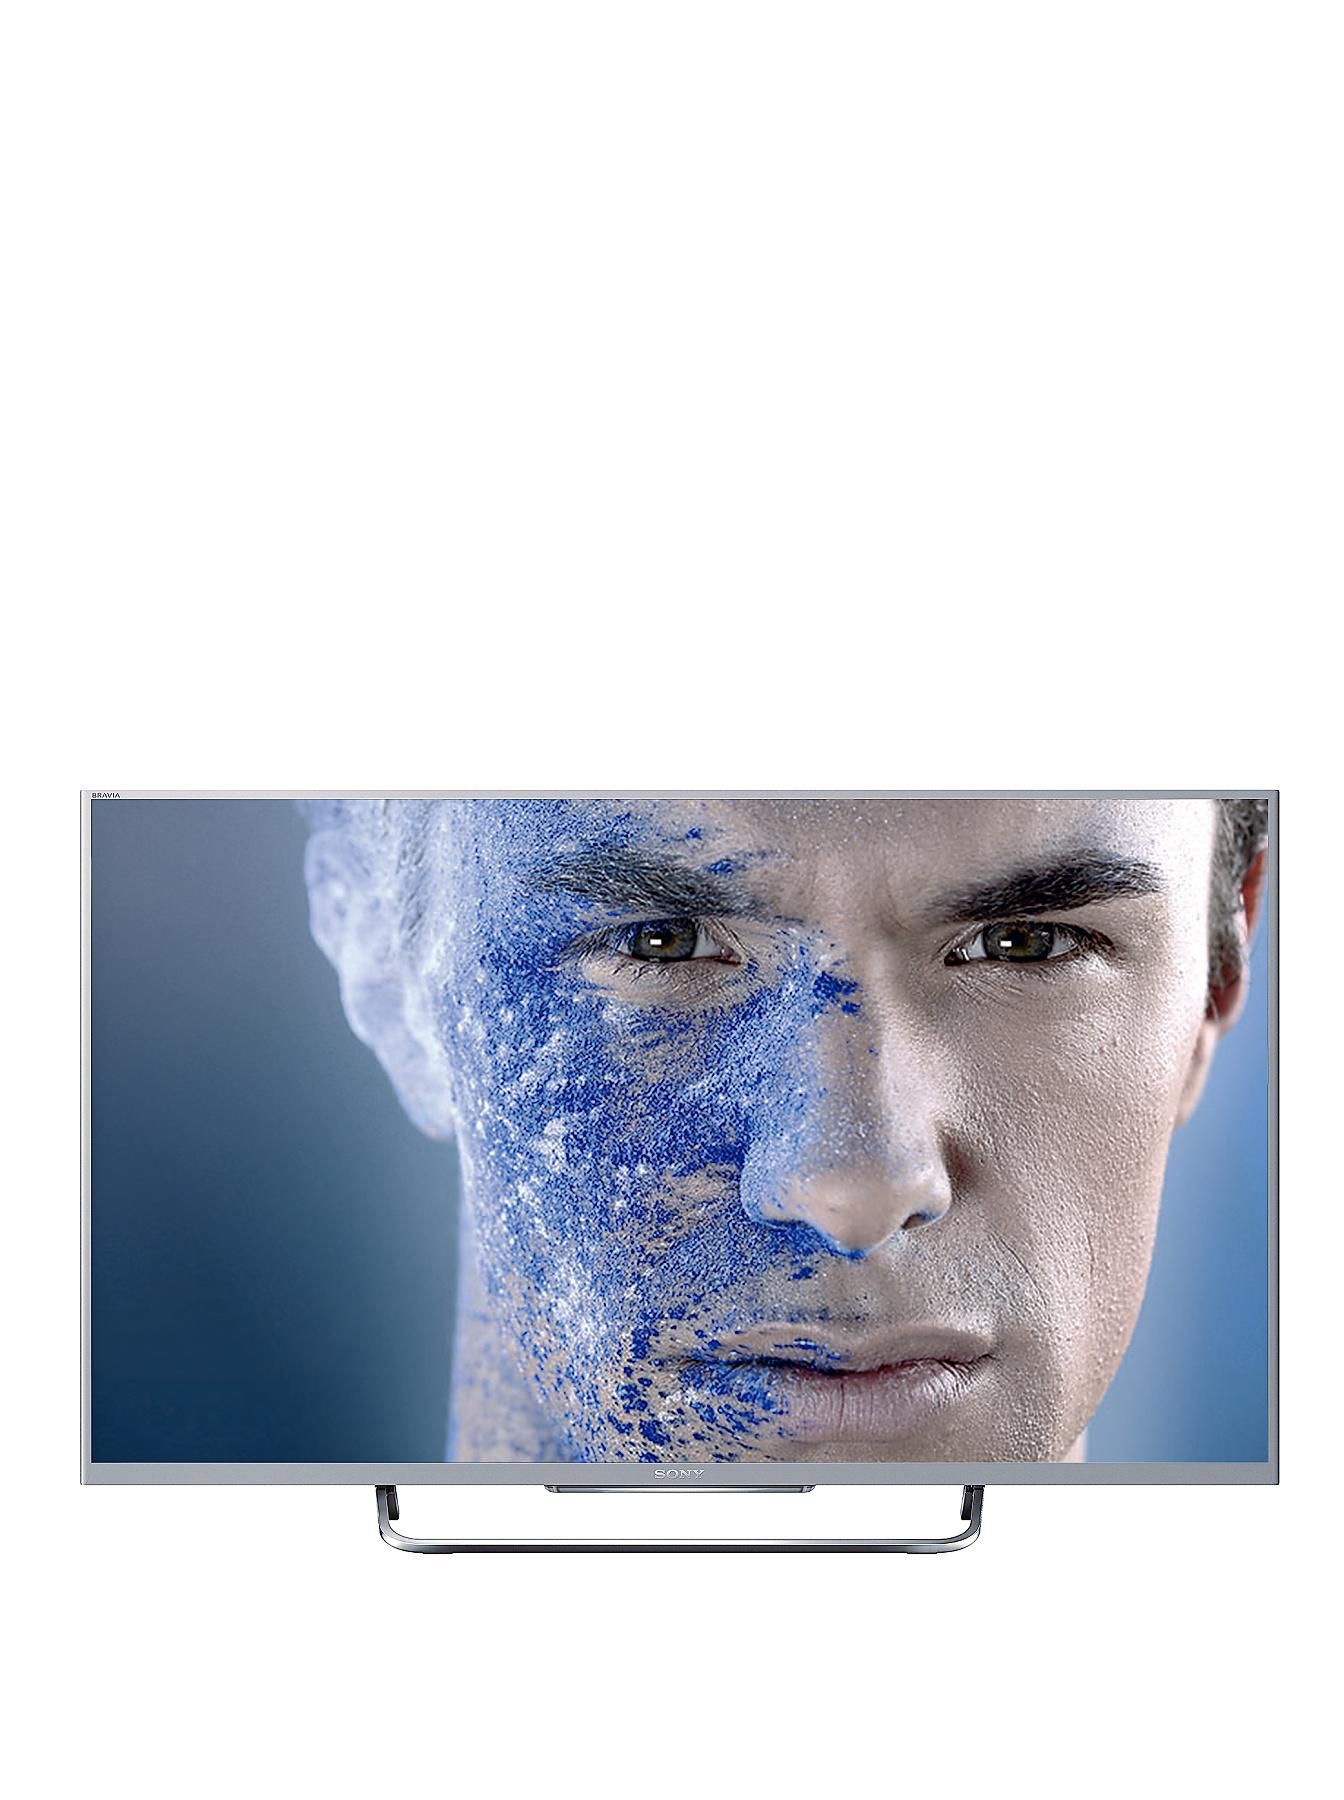 Sony KDL32W706BSU 32-inch Widescreen Full HD 1080p Smart TV with Freeview